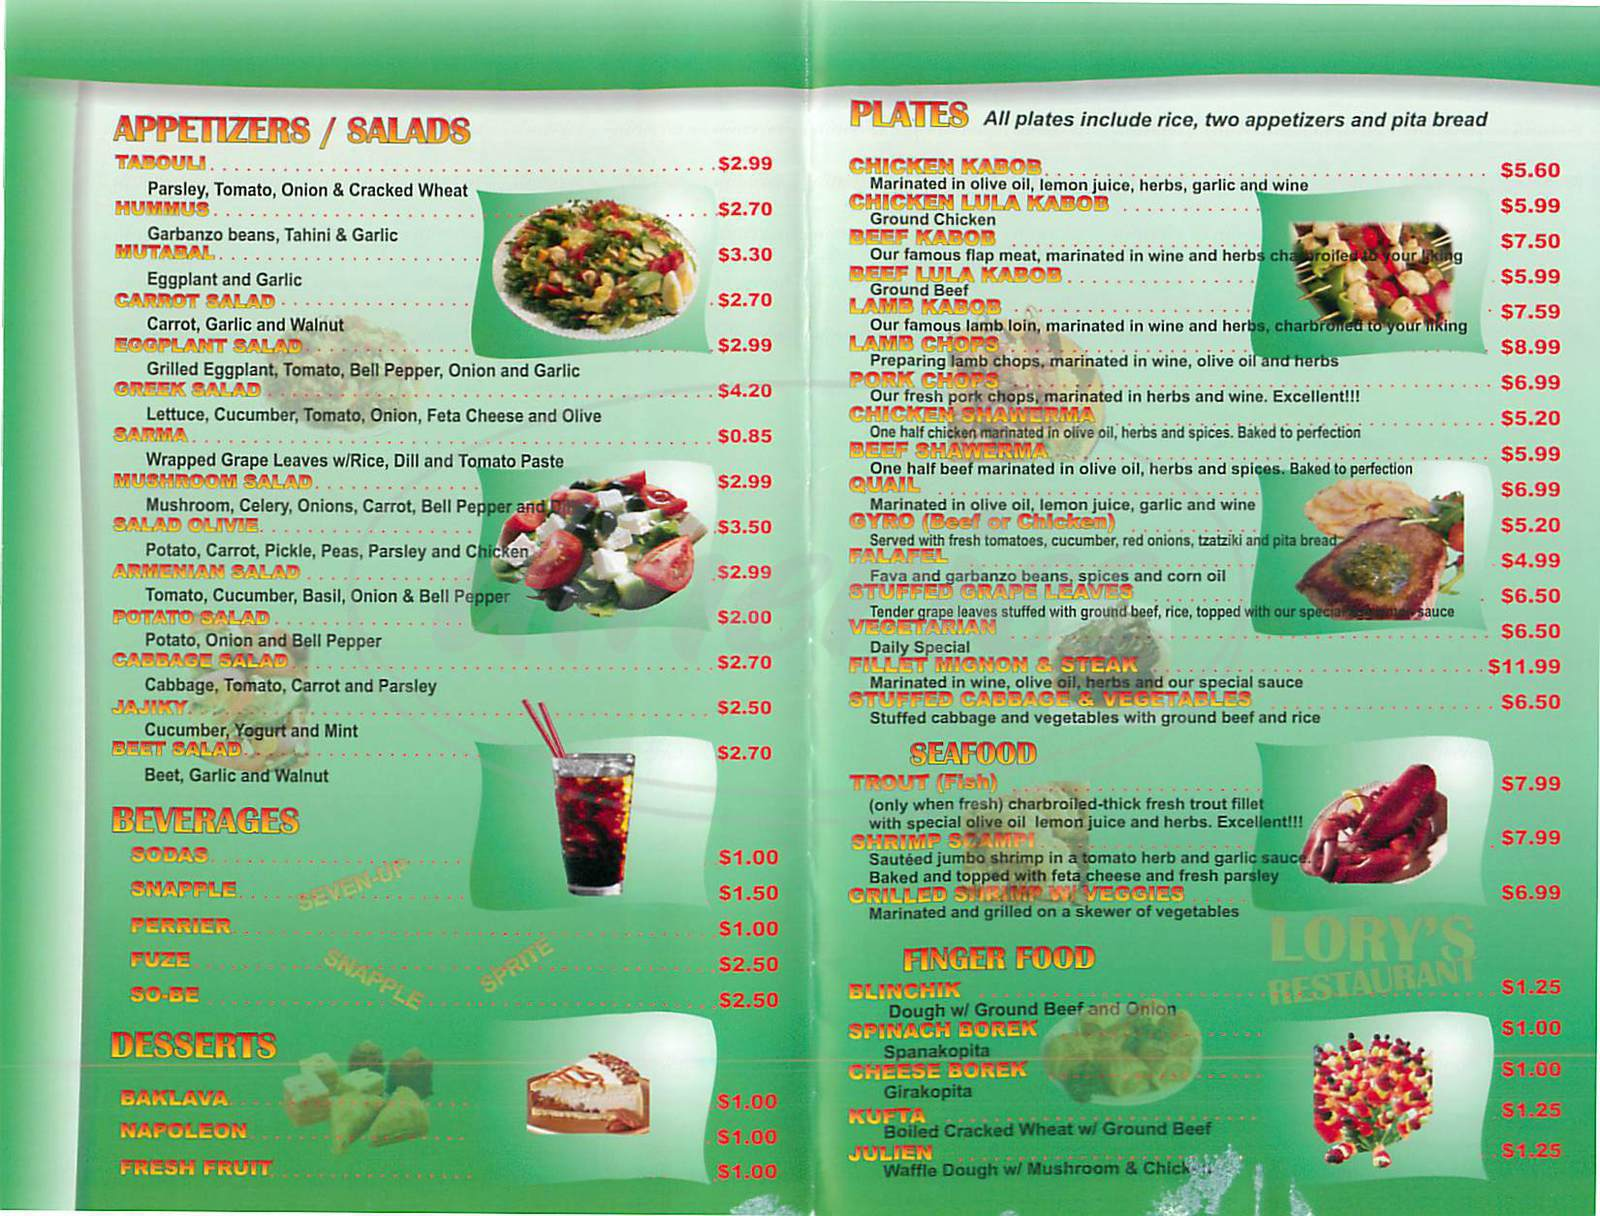 menu for Lory's Restaurant